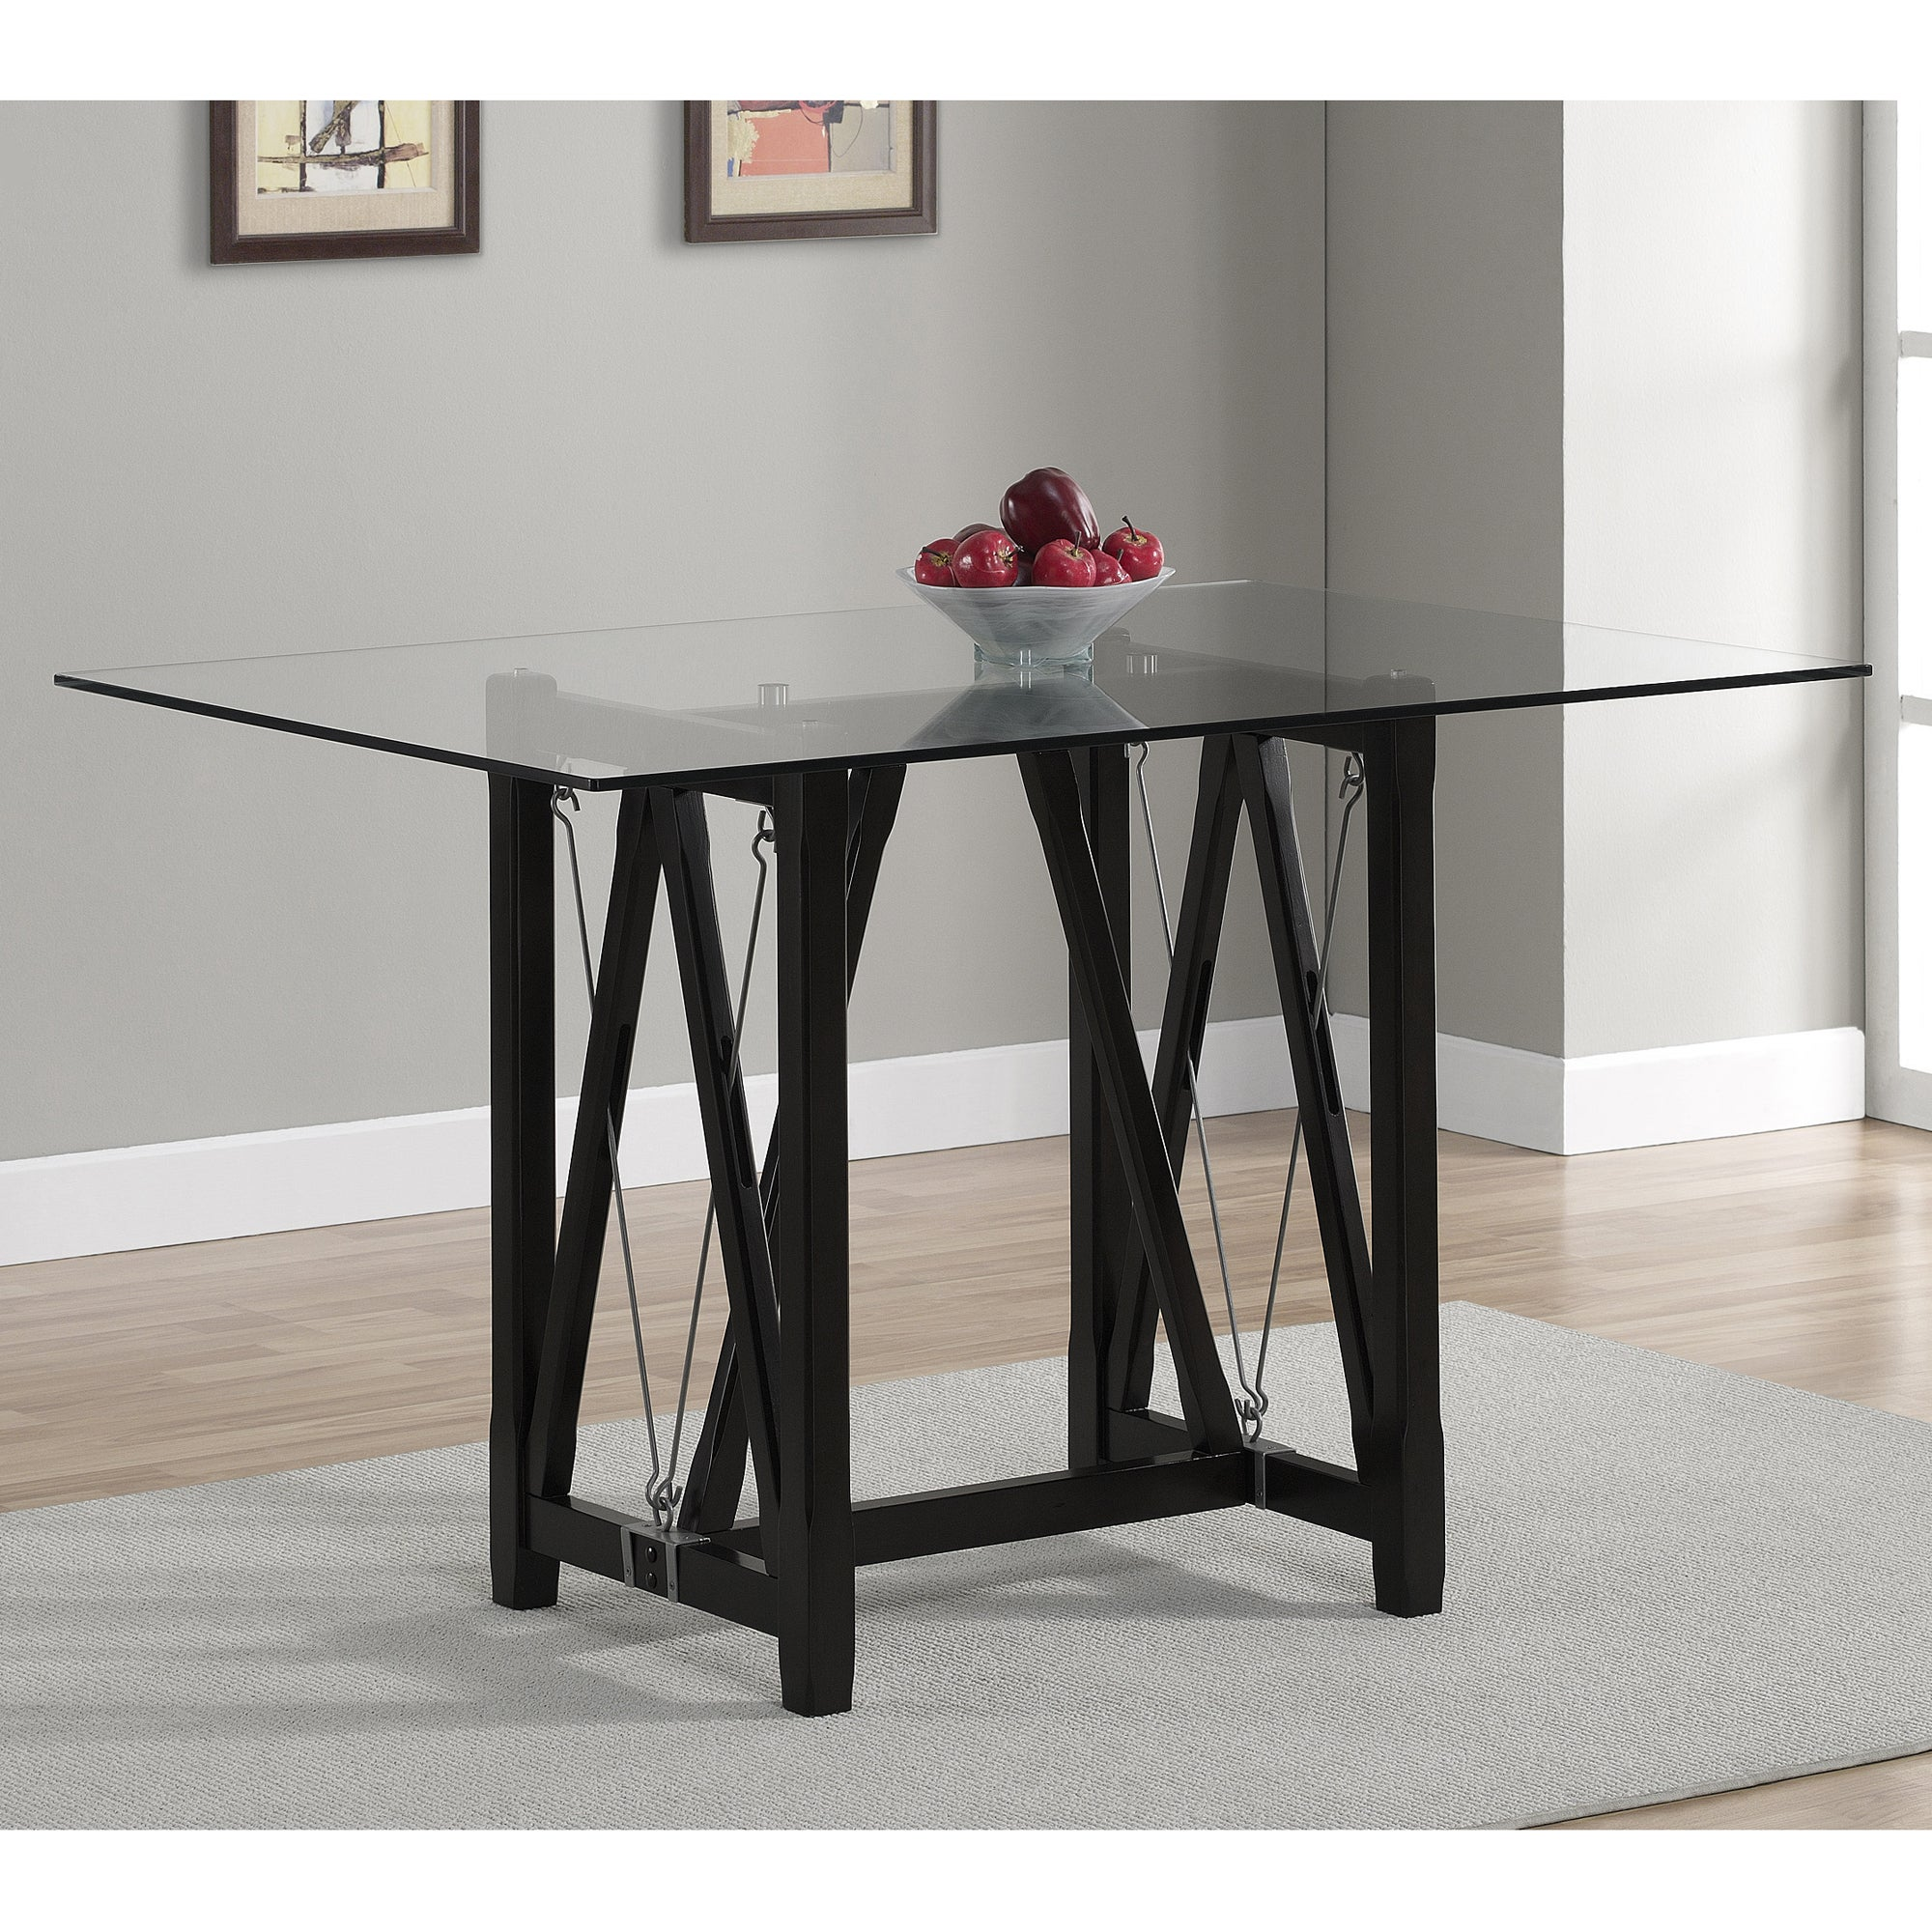 Cable dark espresso tempered glass dining table for Tempered glass dining table